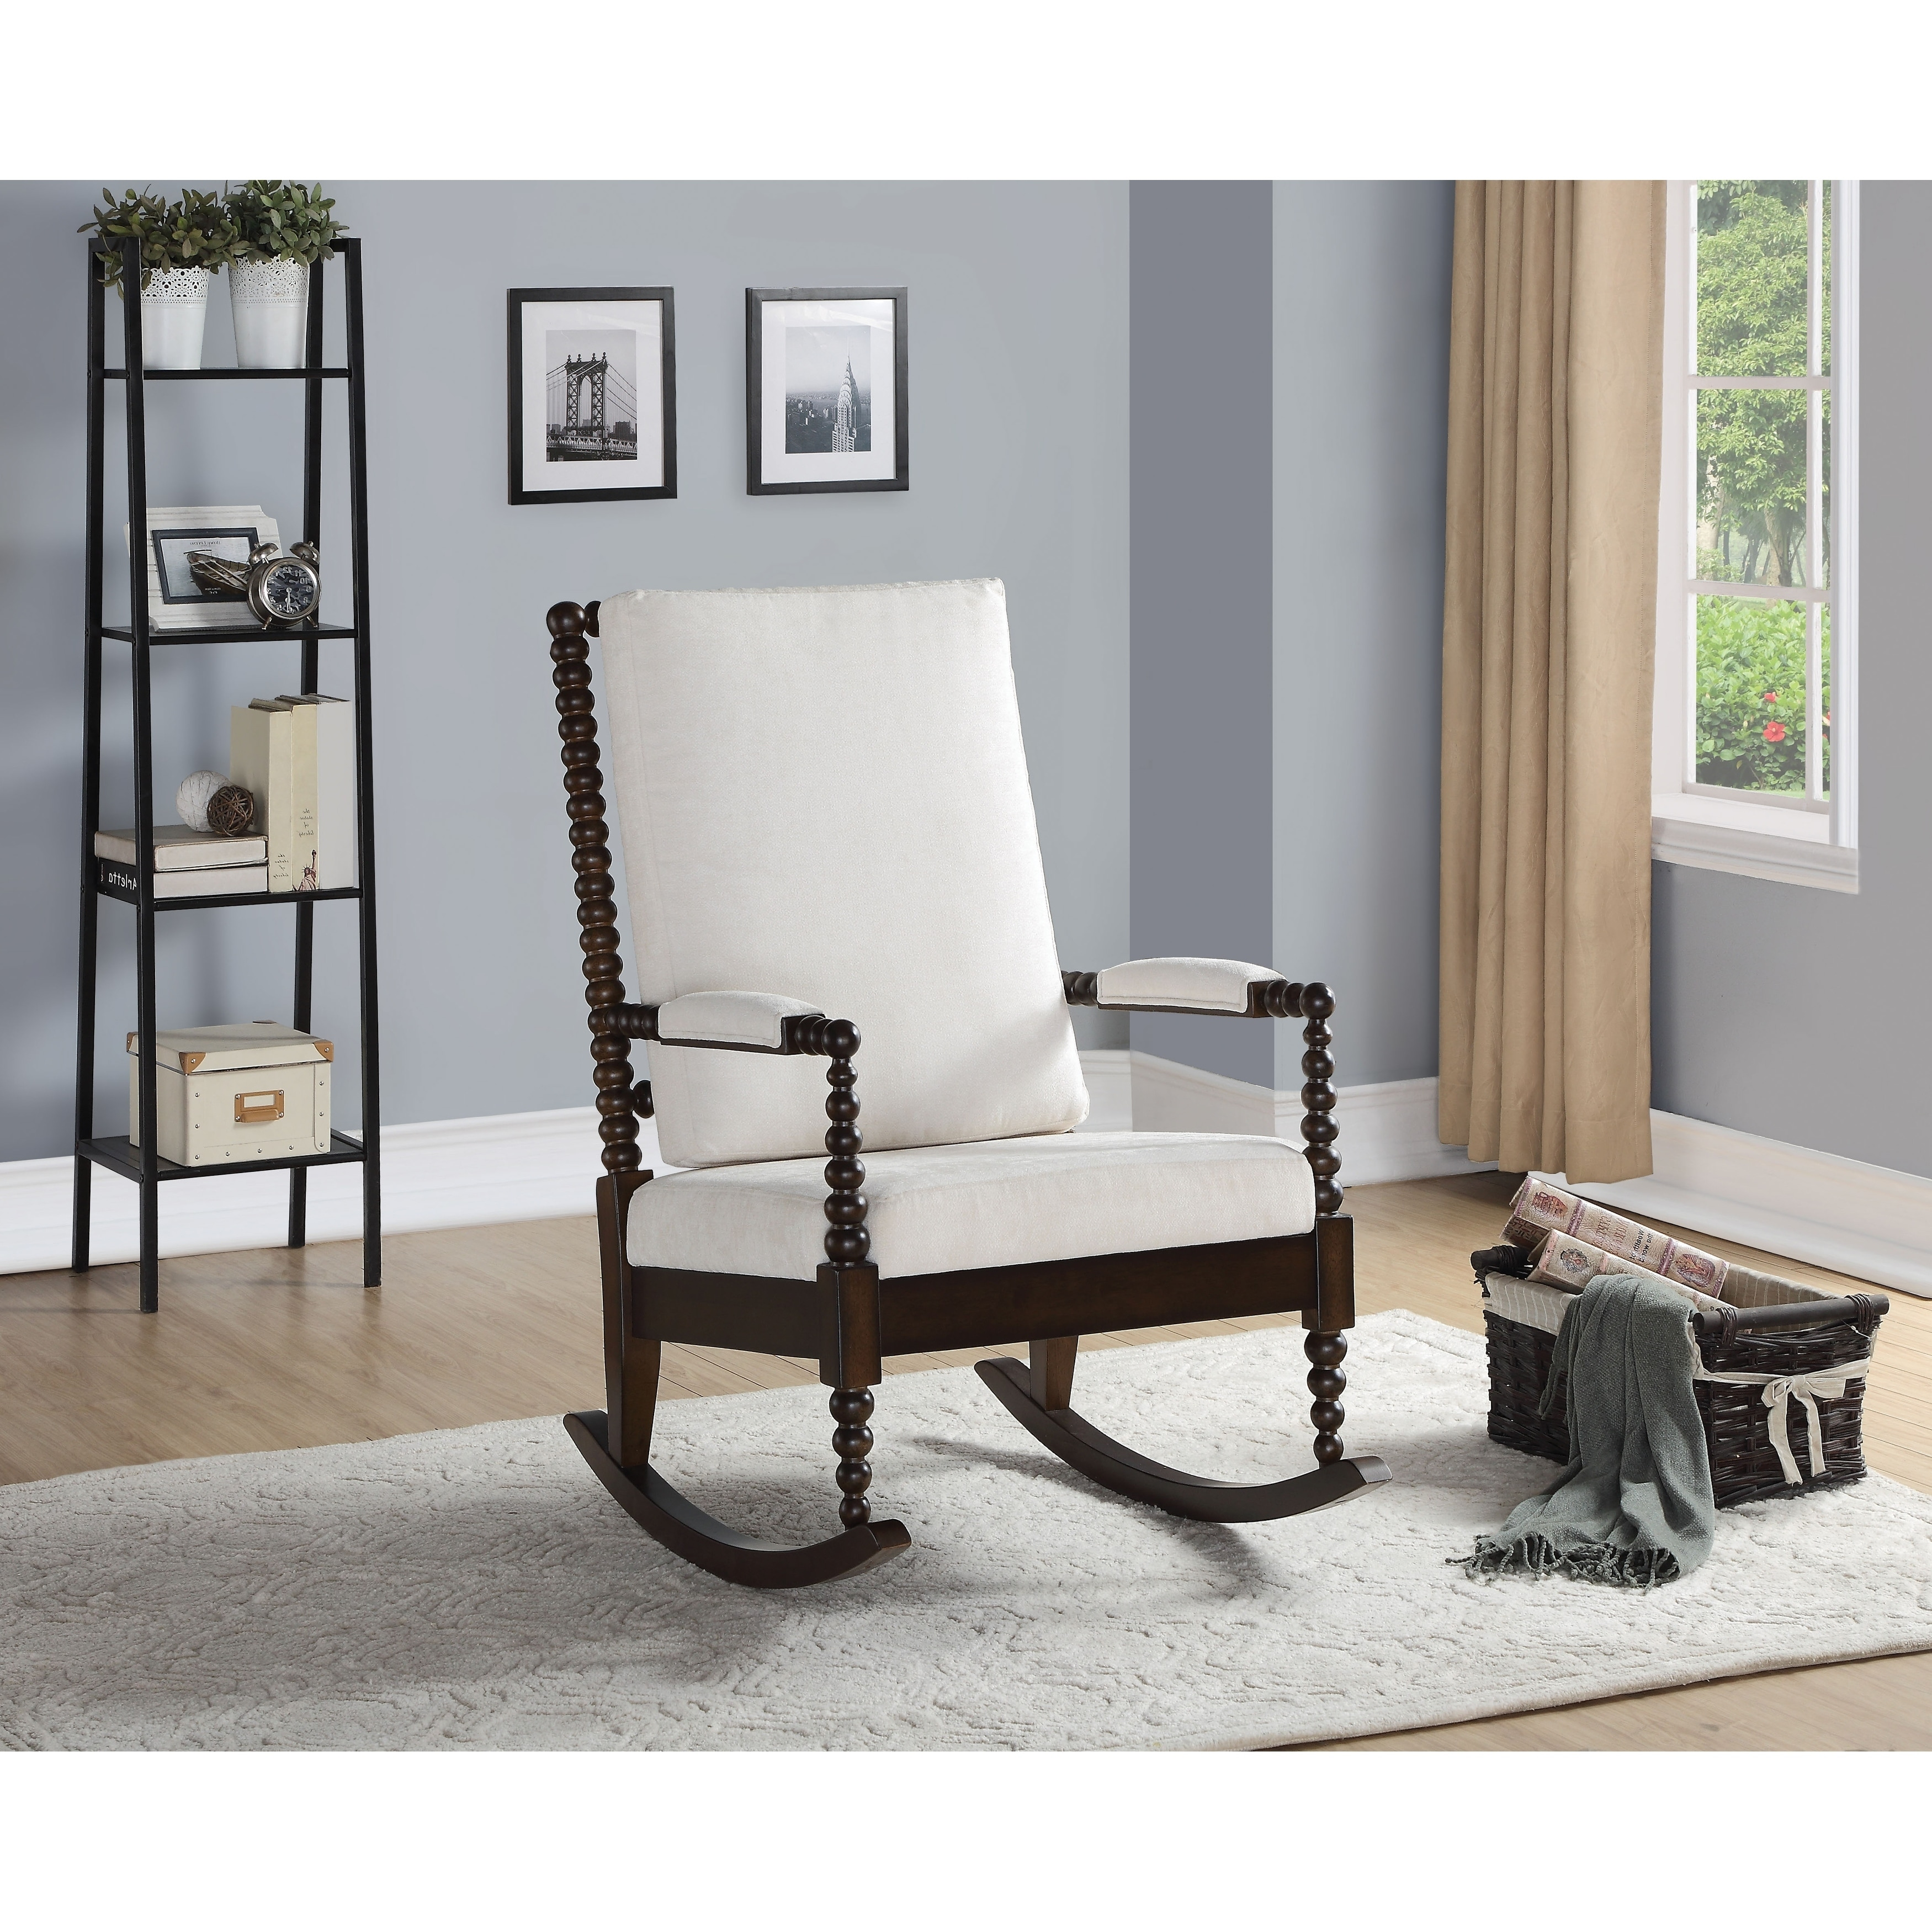 Tremendous Wooden Rocking Chair With Fabric Upholstered Cushions White And Brown Evergreenethics Interior Chair Design Evergreenethicsorg